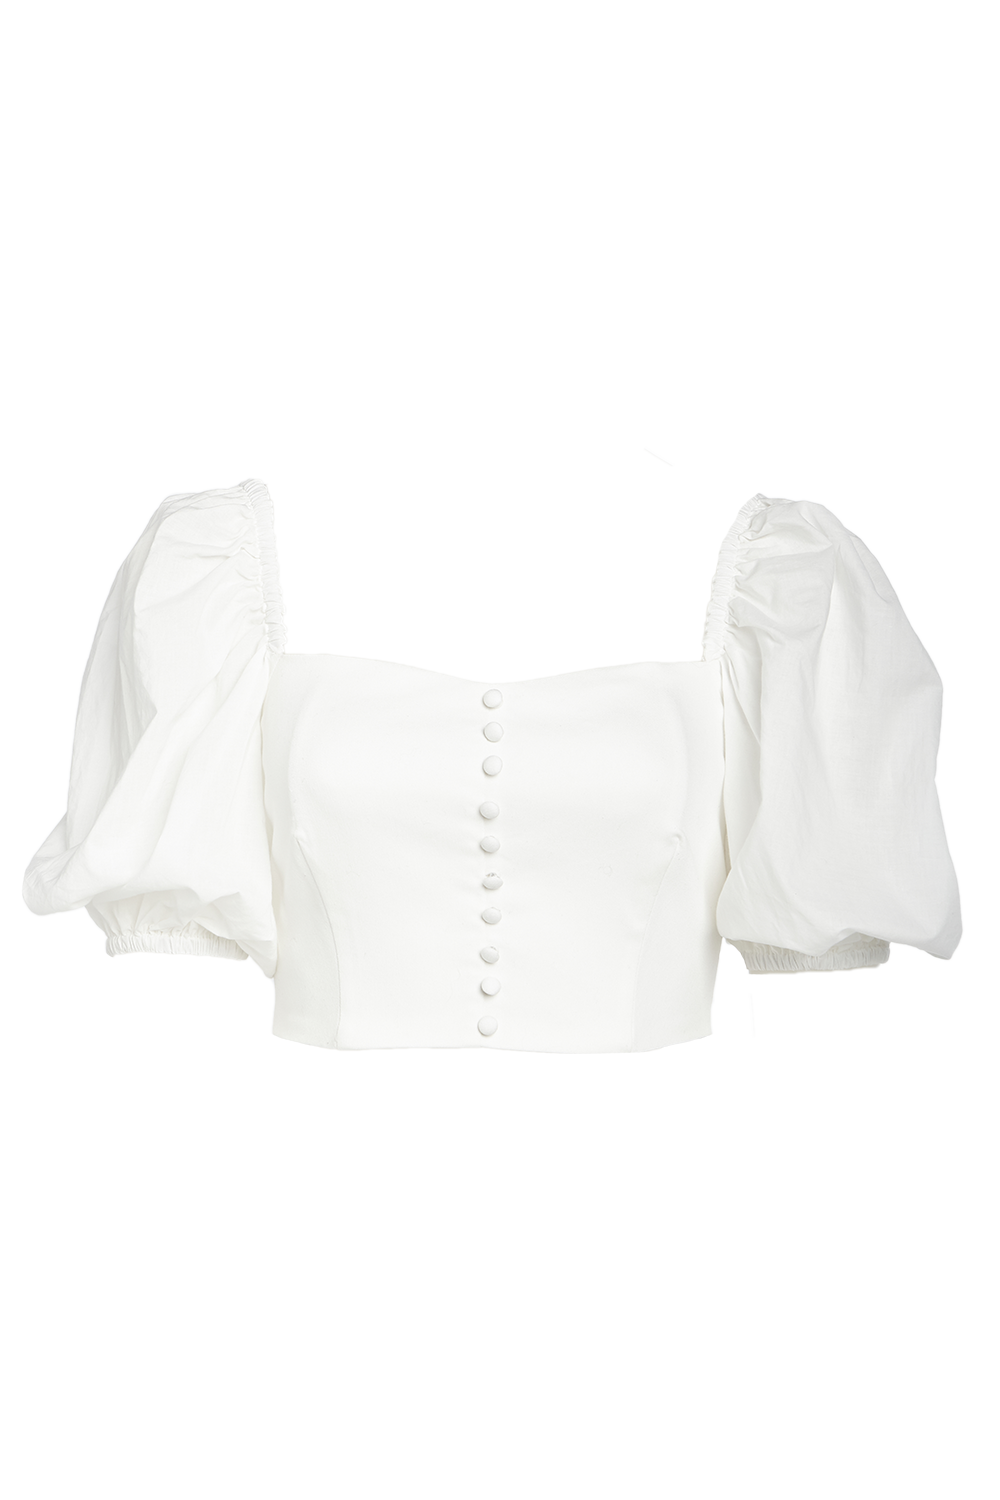 LIMA TOP in colour BRIGHT WHITE